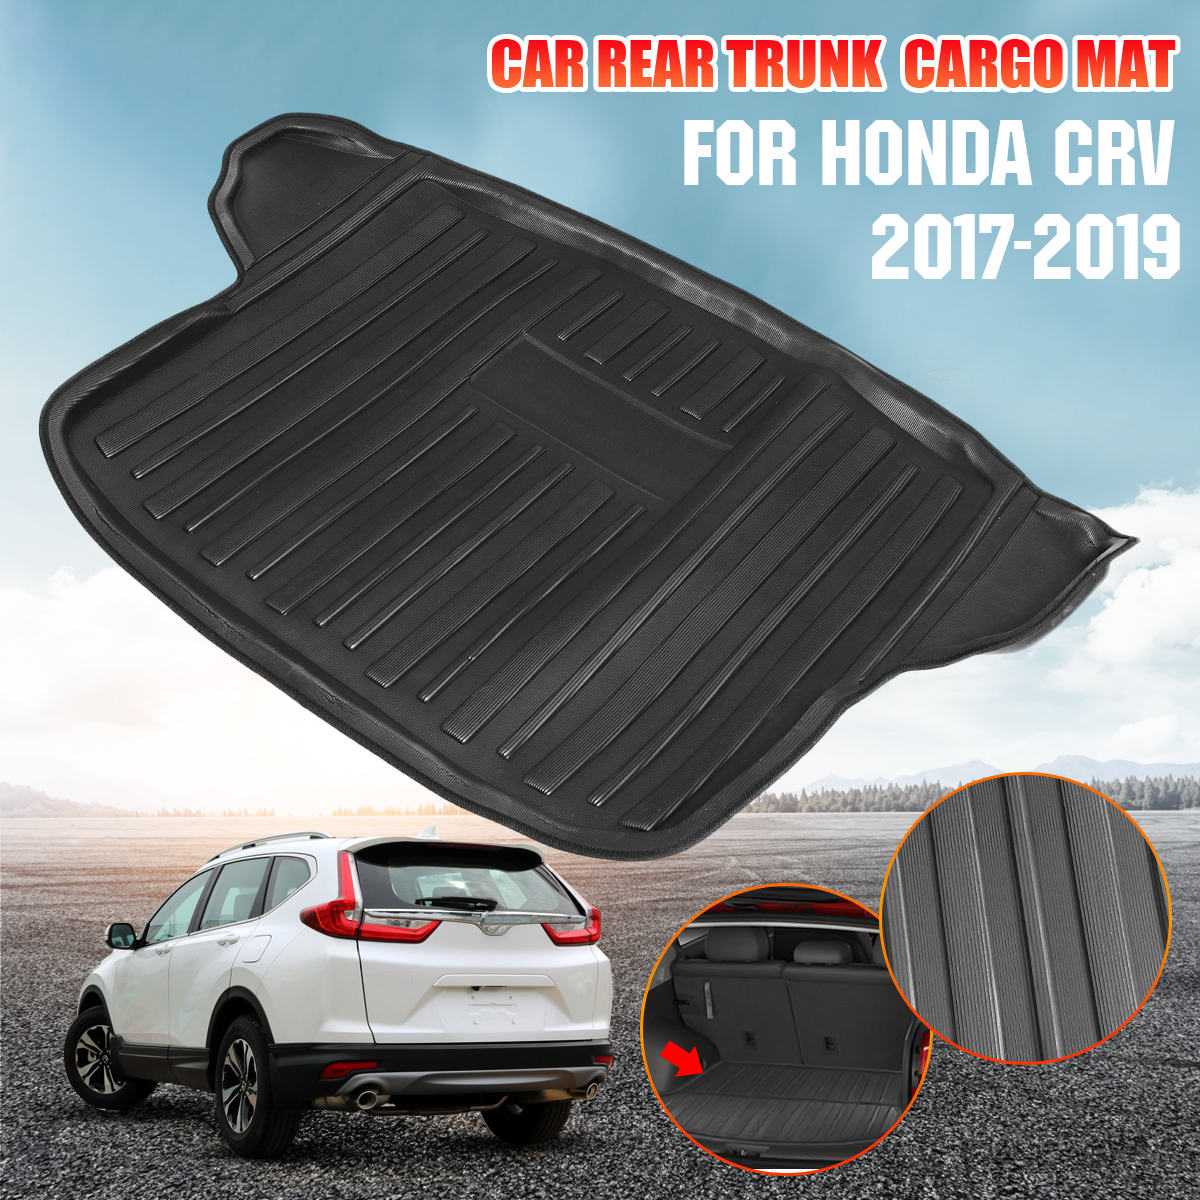 Car Cargo Liner Boot Tray Rear Trunk Cover Matt Mat Floor Carpet Kick Pad For Honda For CRV CR-V 2017 2018 2019